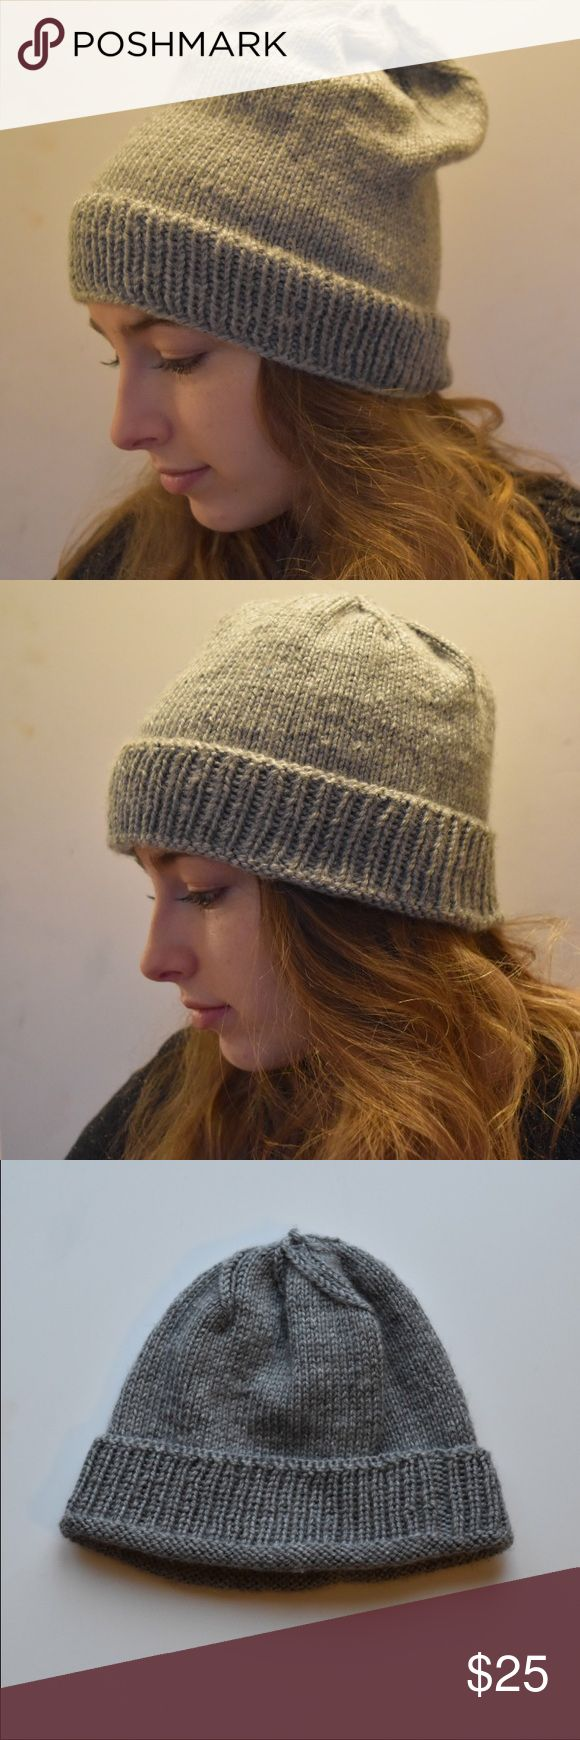 Handmade convertible beanie hat Handmade tight knit convertible beanie with fold up rib knit brim for two different looks.   Made with light grey heathered soft 100% acrylic yarn  Machine wash gentle, lay flat to dry Accessories Hats